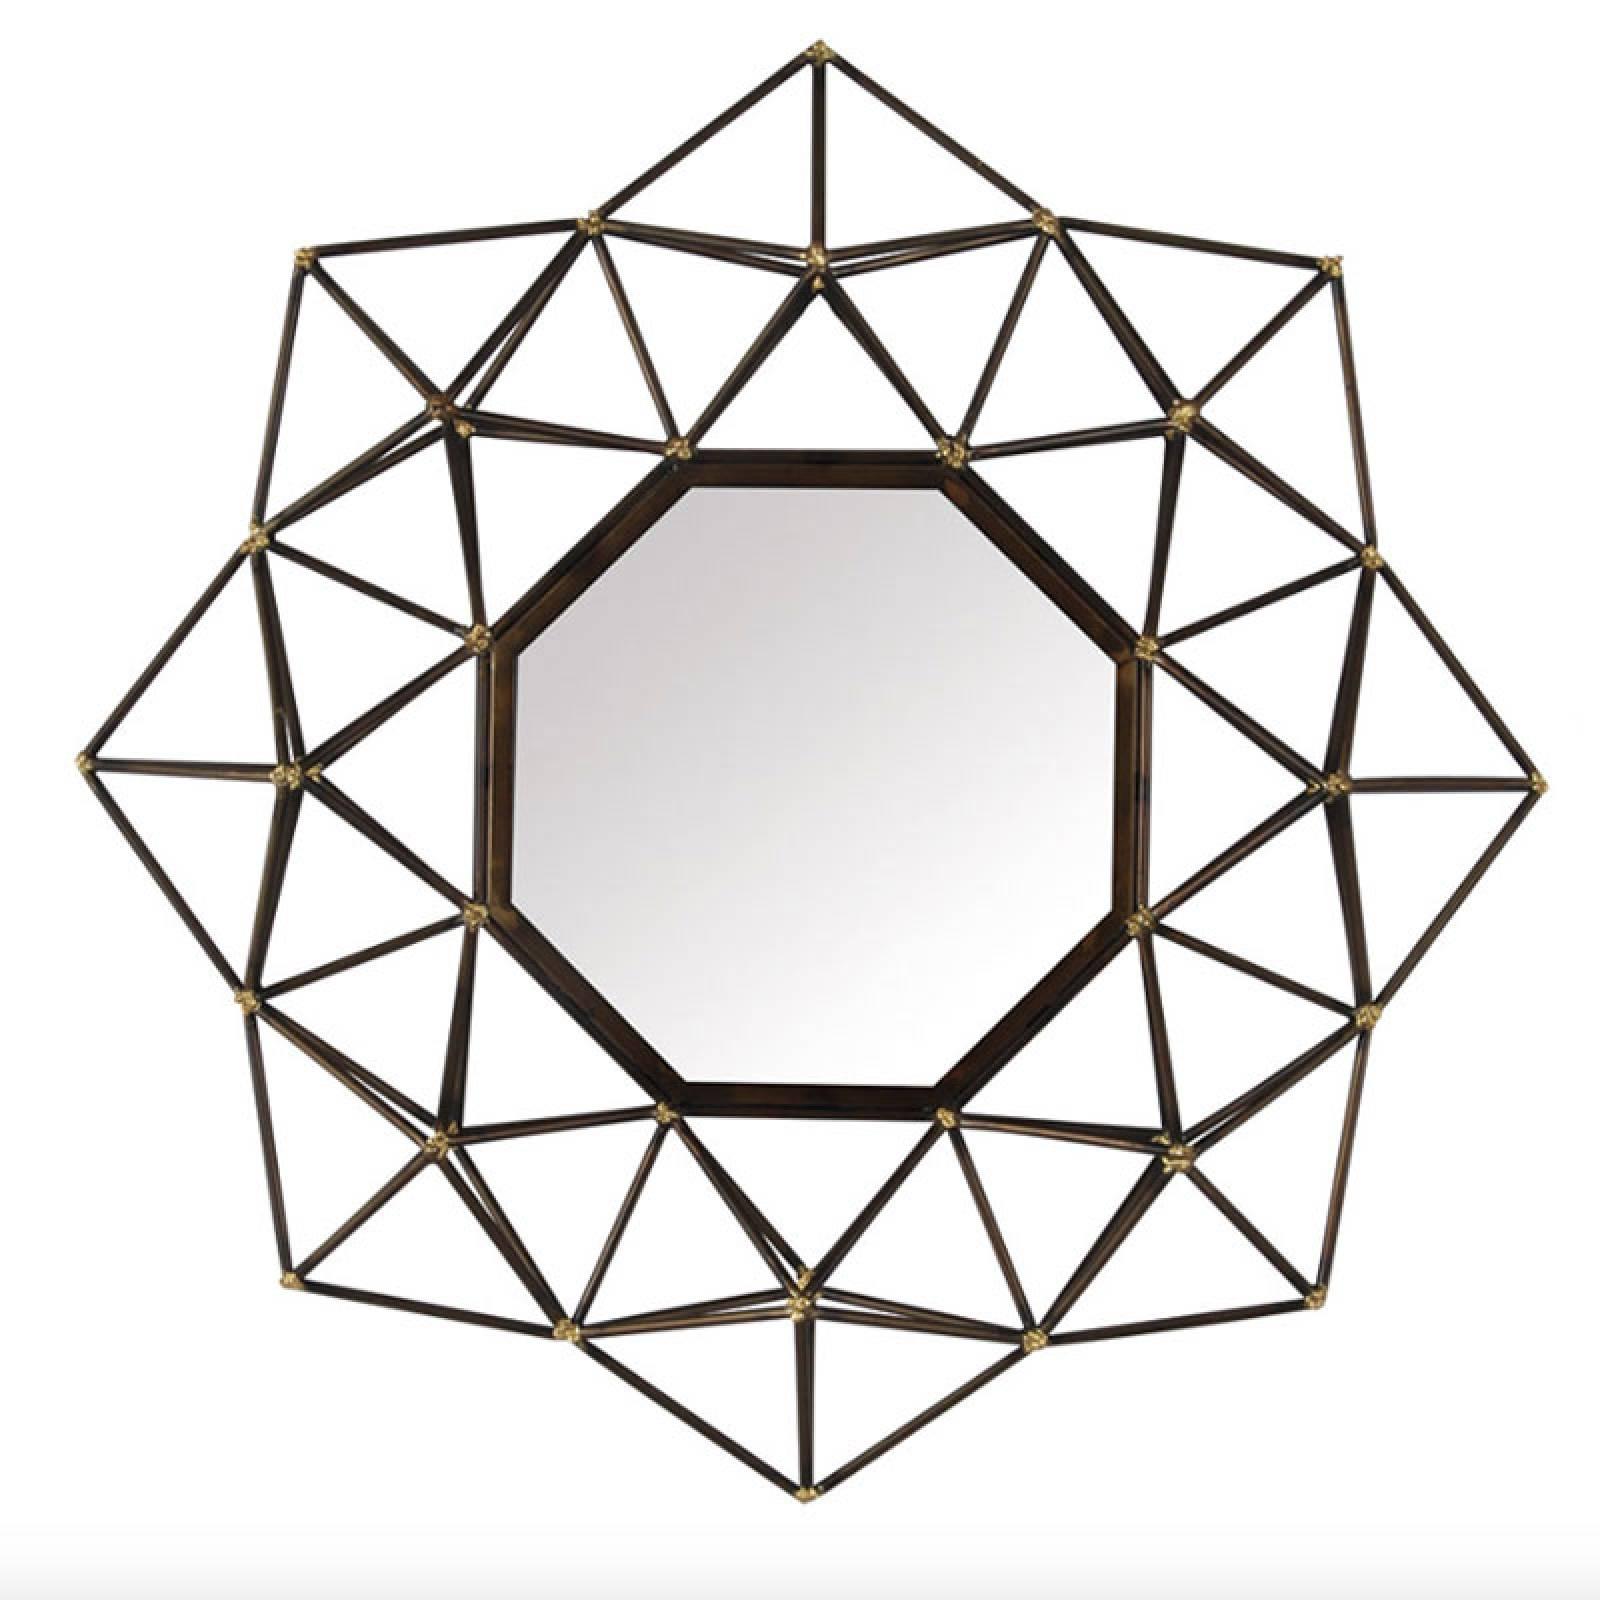 Atom Mirror 3D Black Metal With Gold Spot Joints